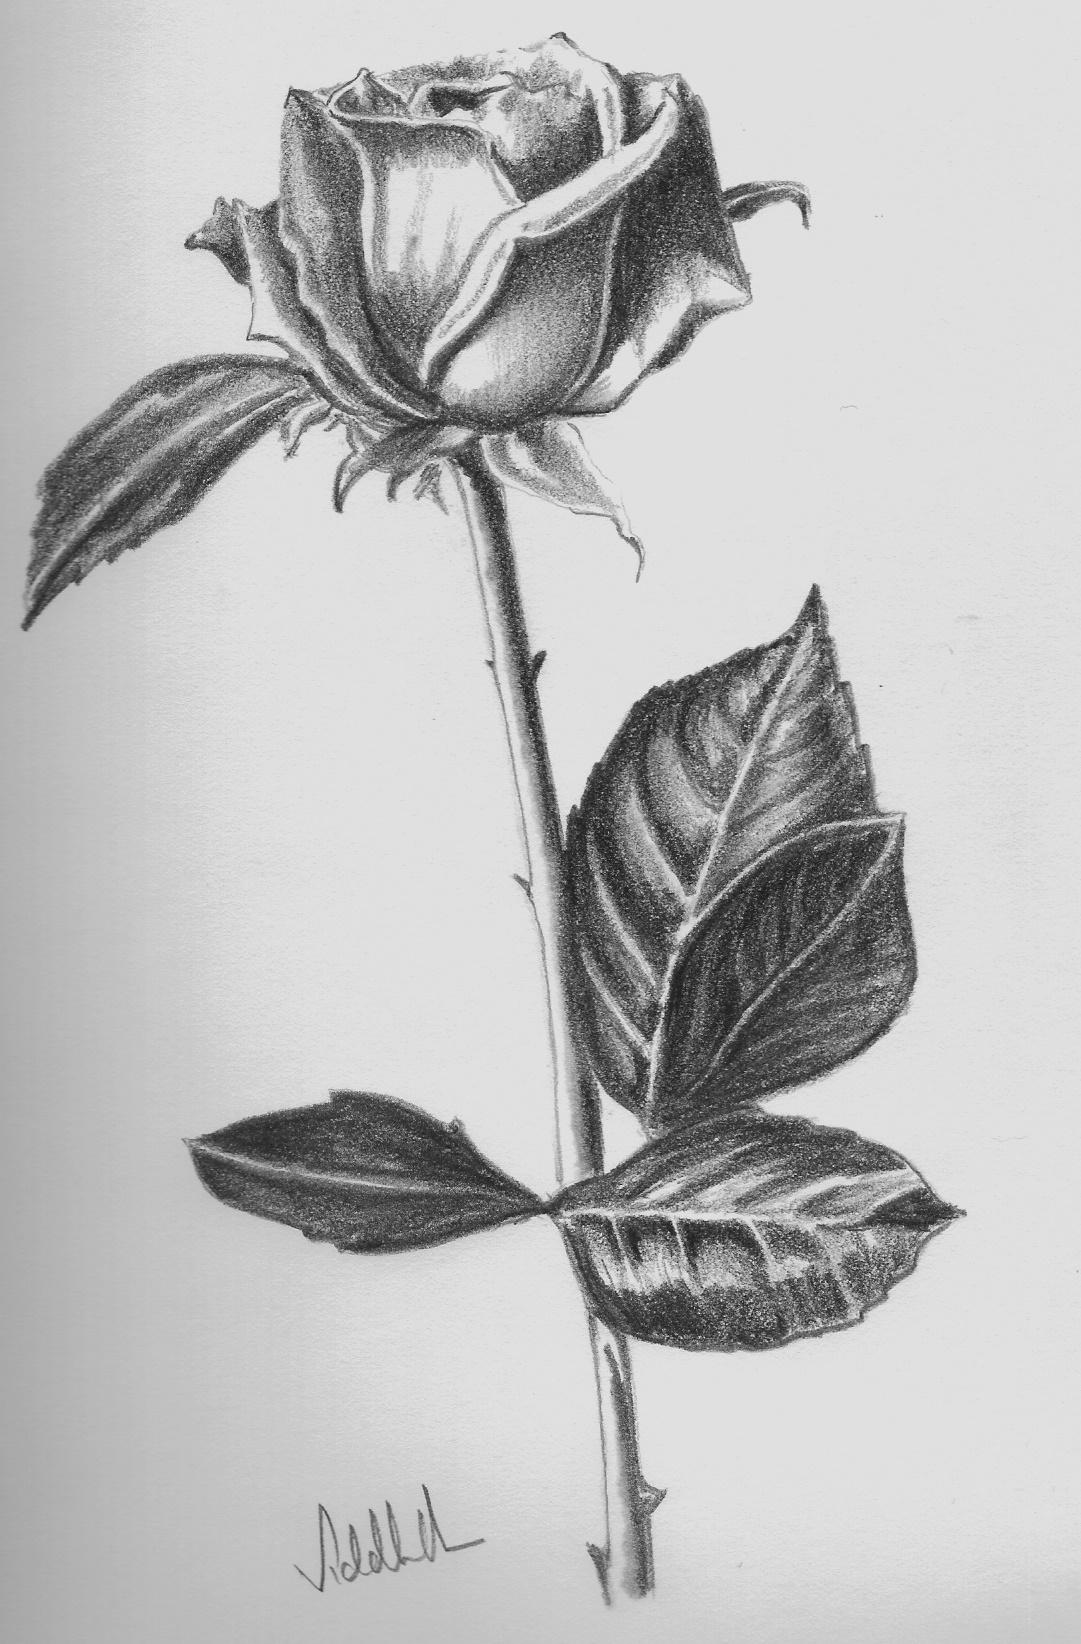 Drawn rose love Art Drawing and Flower library